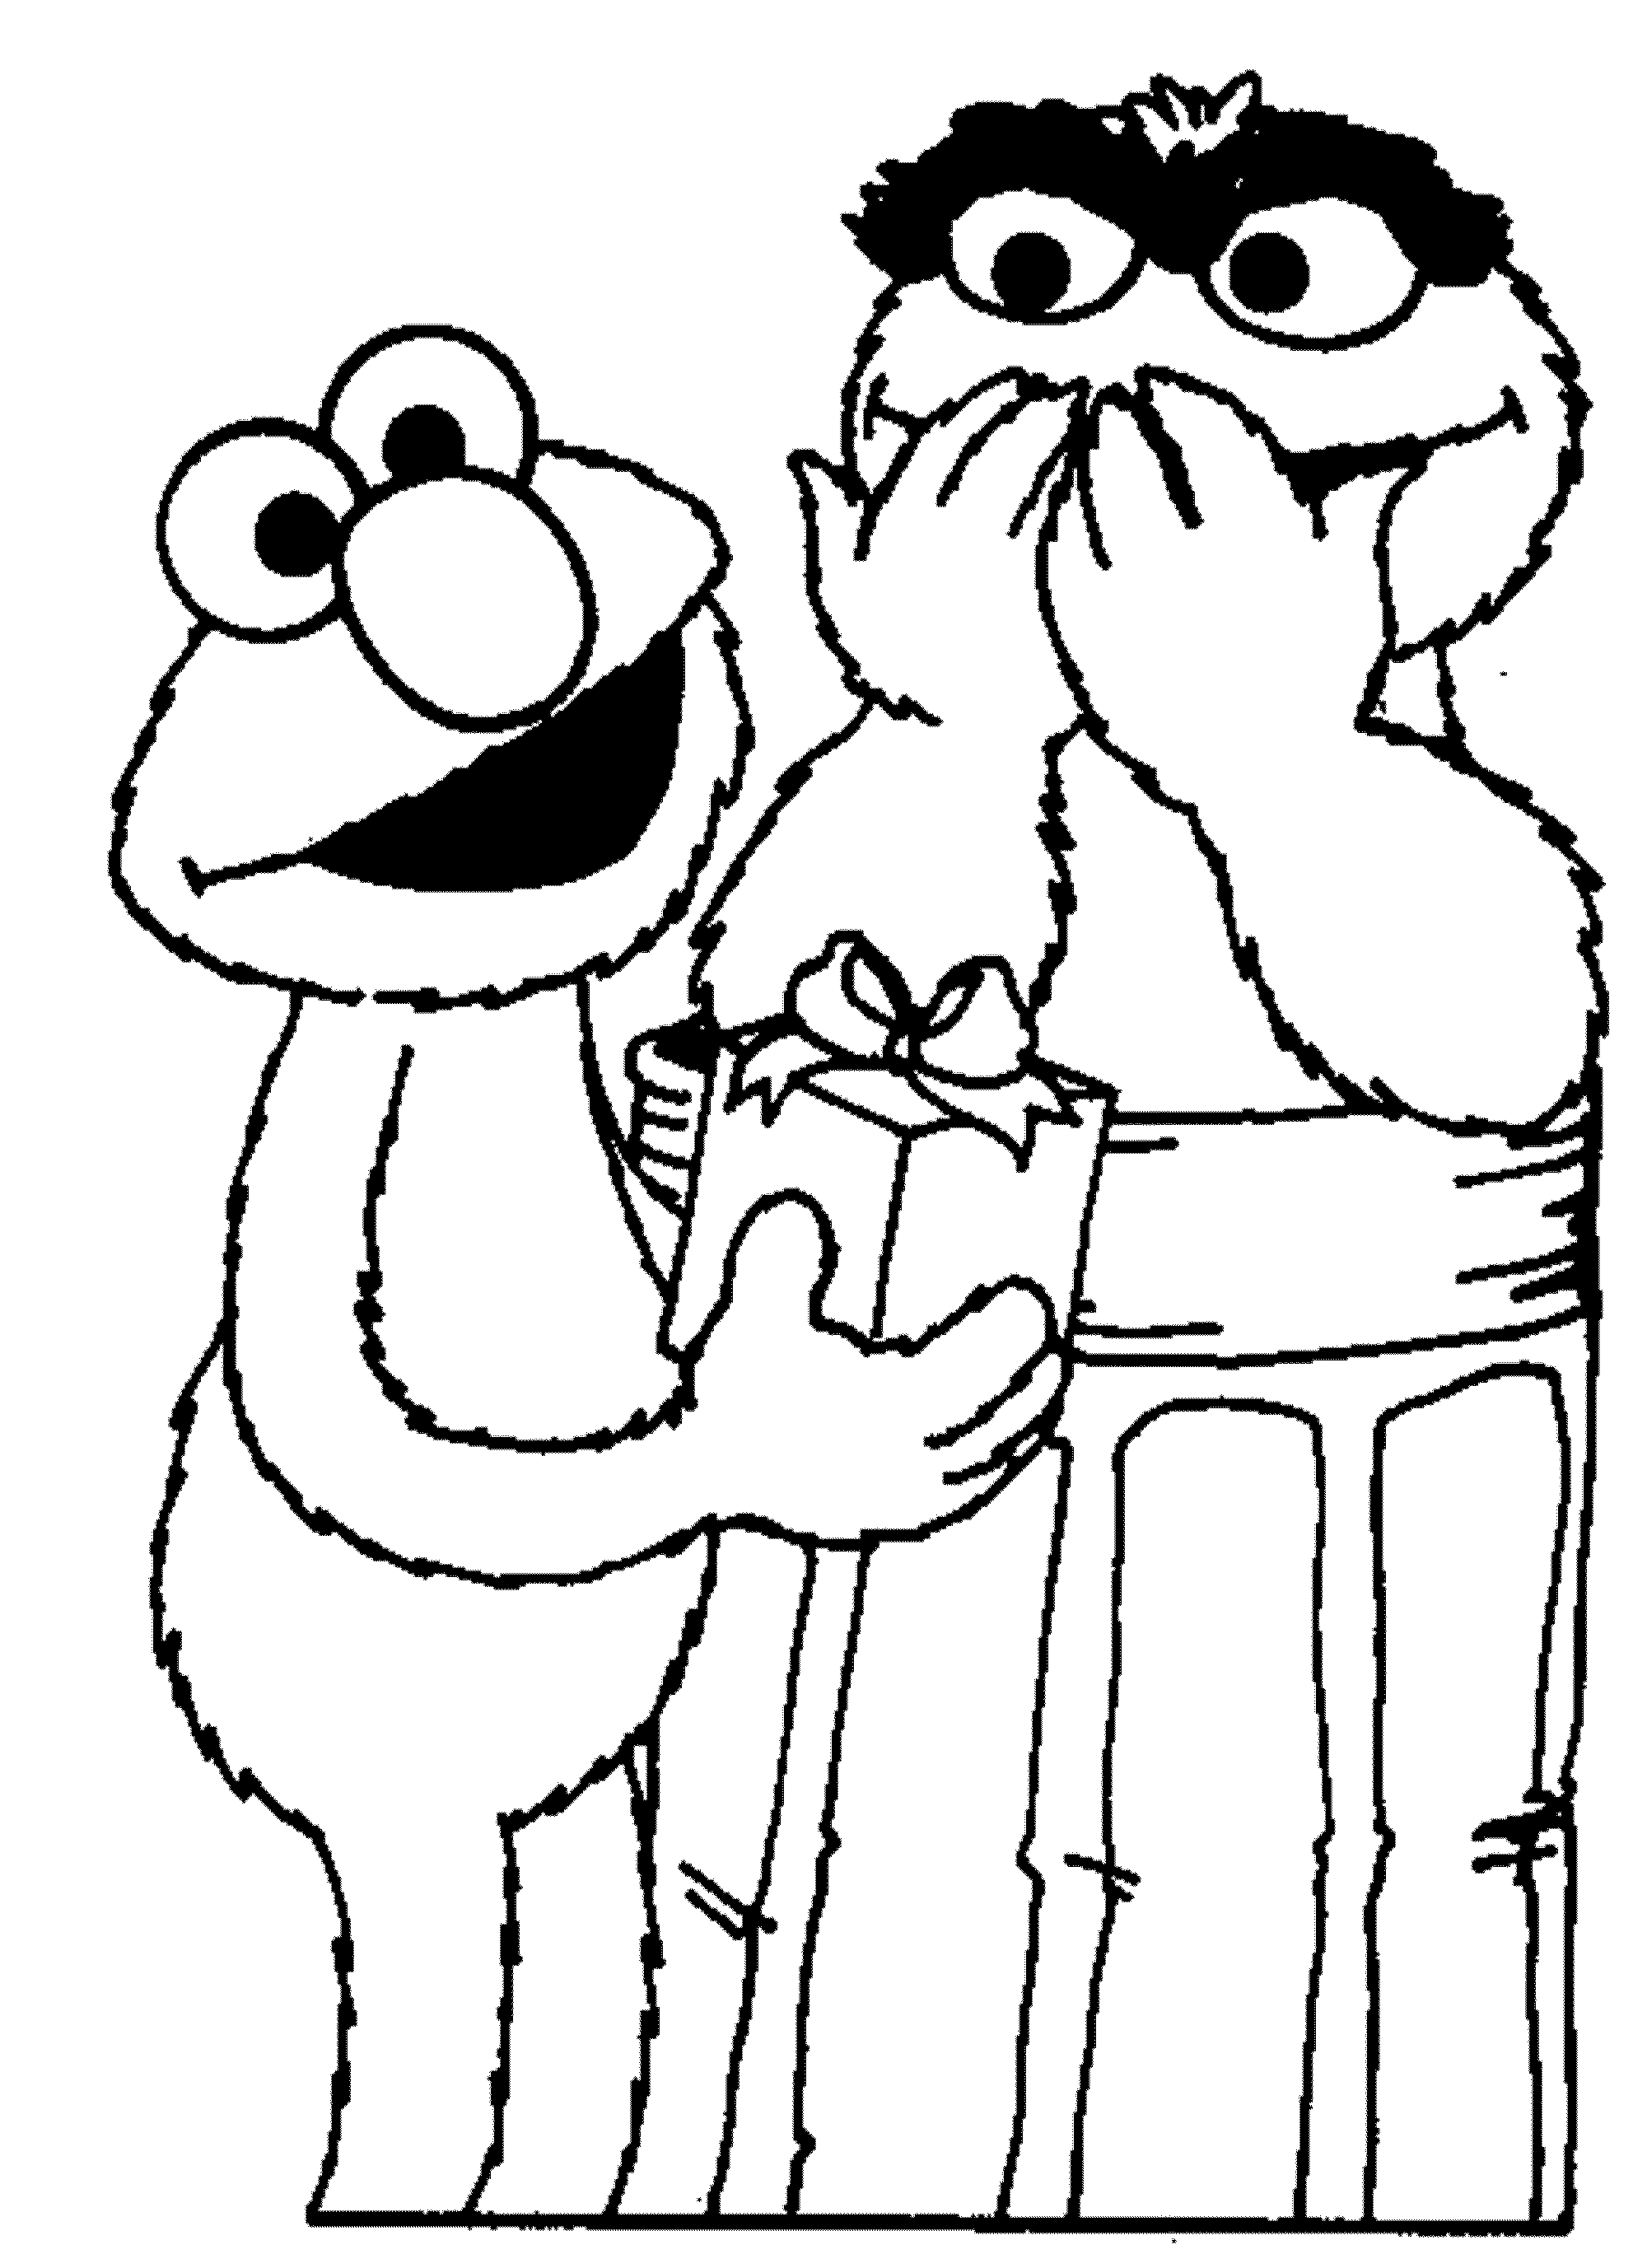 Free coloring pages elmo - Free Printable Elmo Birthday Coloring Pages Voteforverde Com